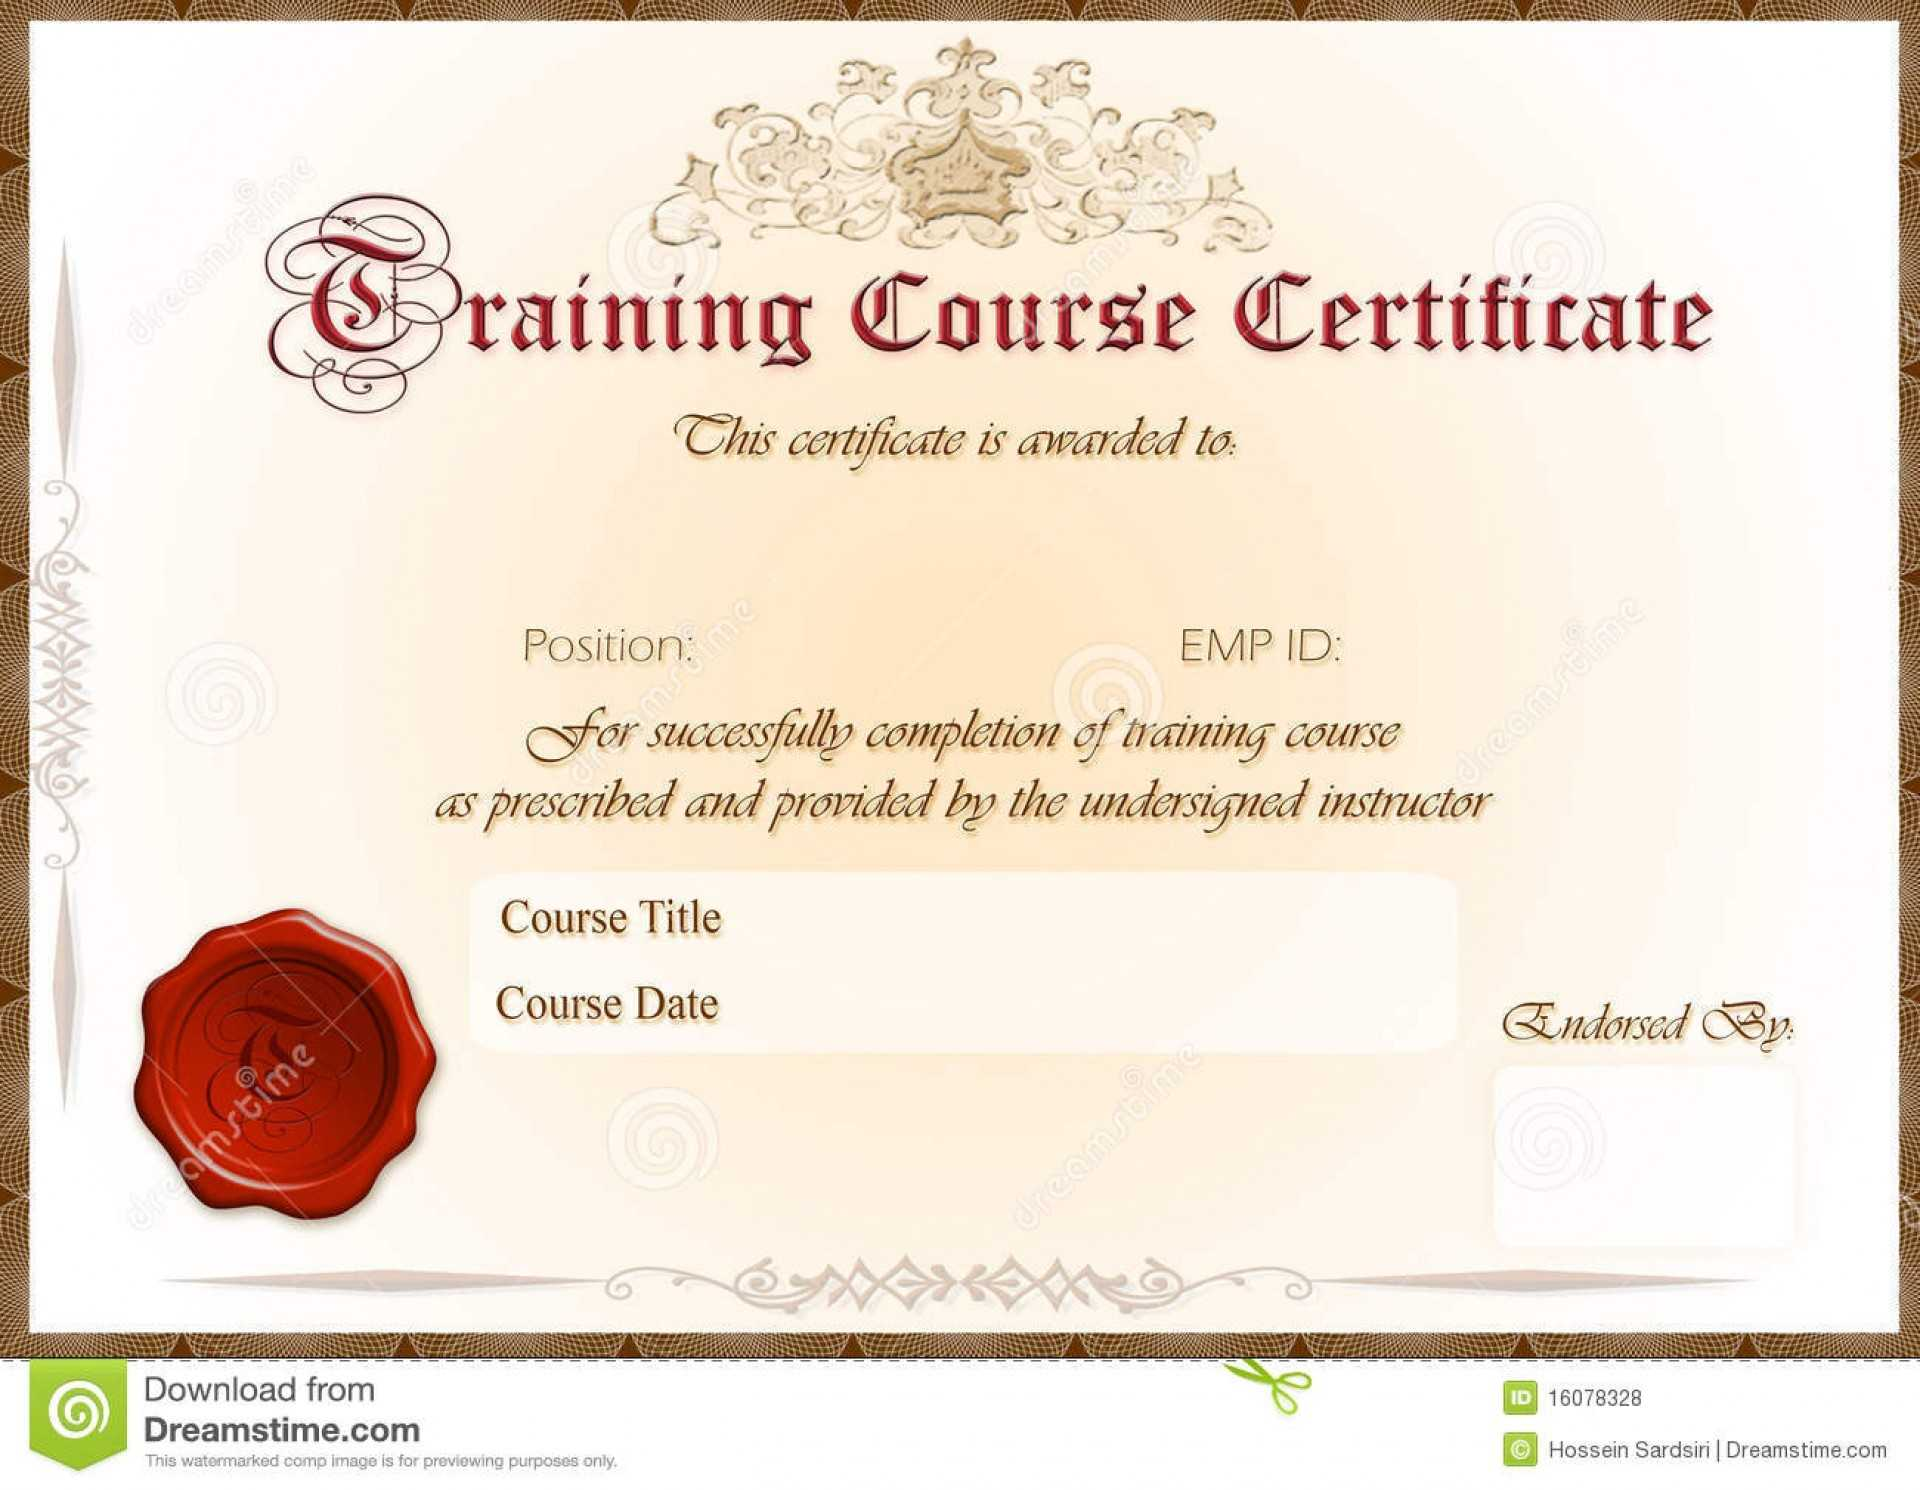 026 Template Ideas Certificates Free Gift Certificate Makes With This Certificate Entitles The Bearer Template